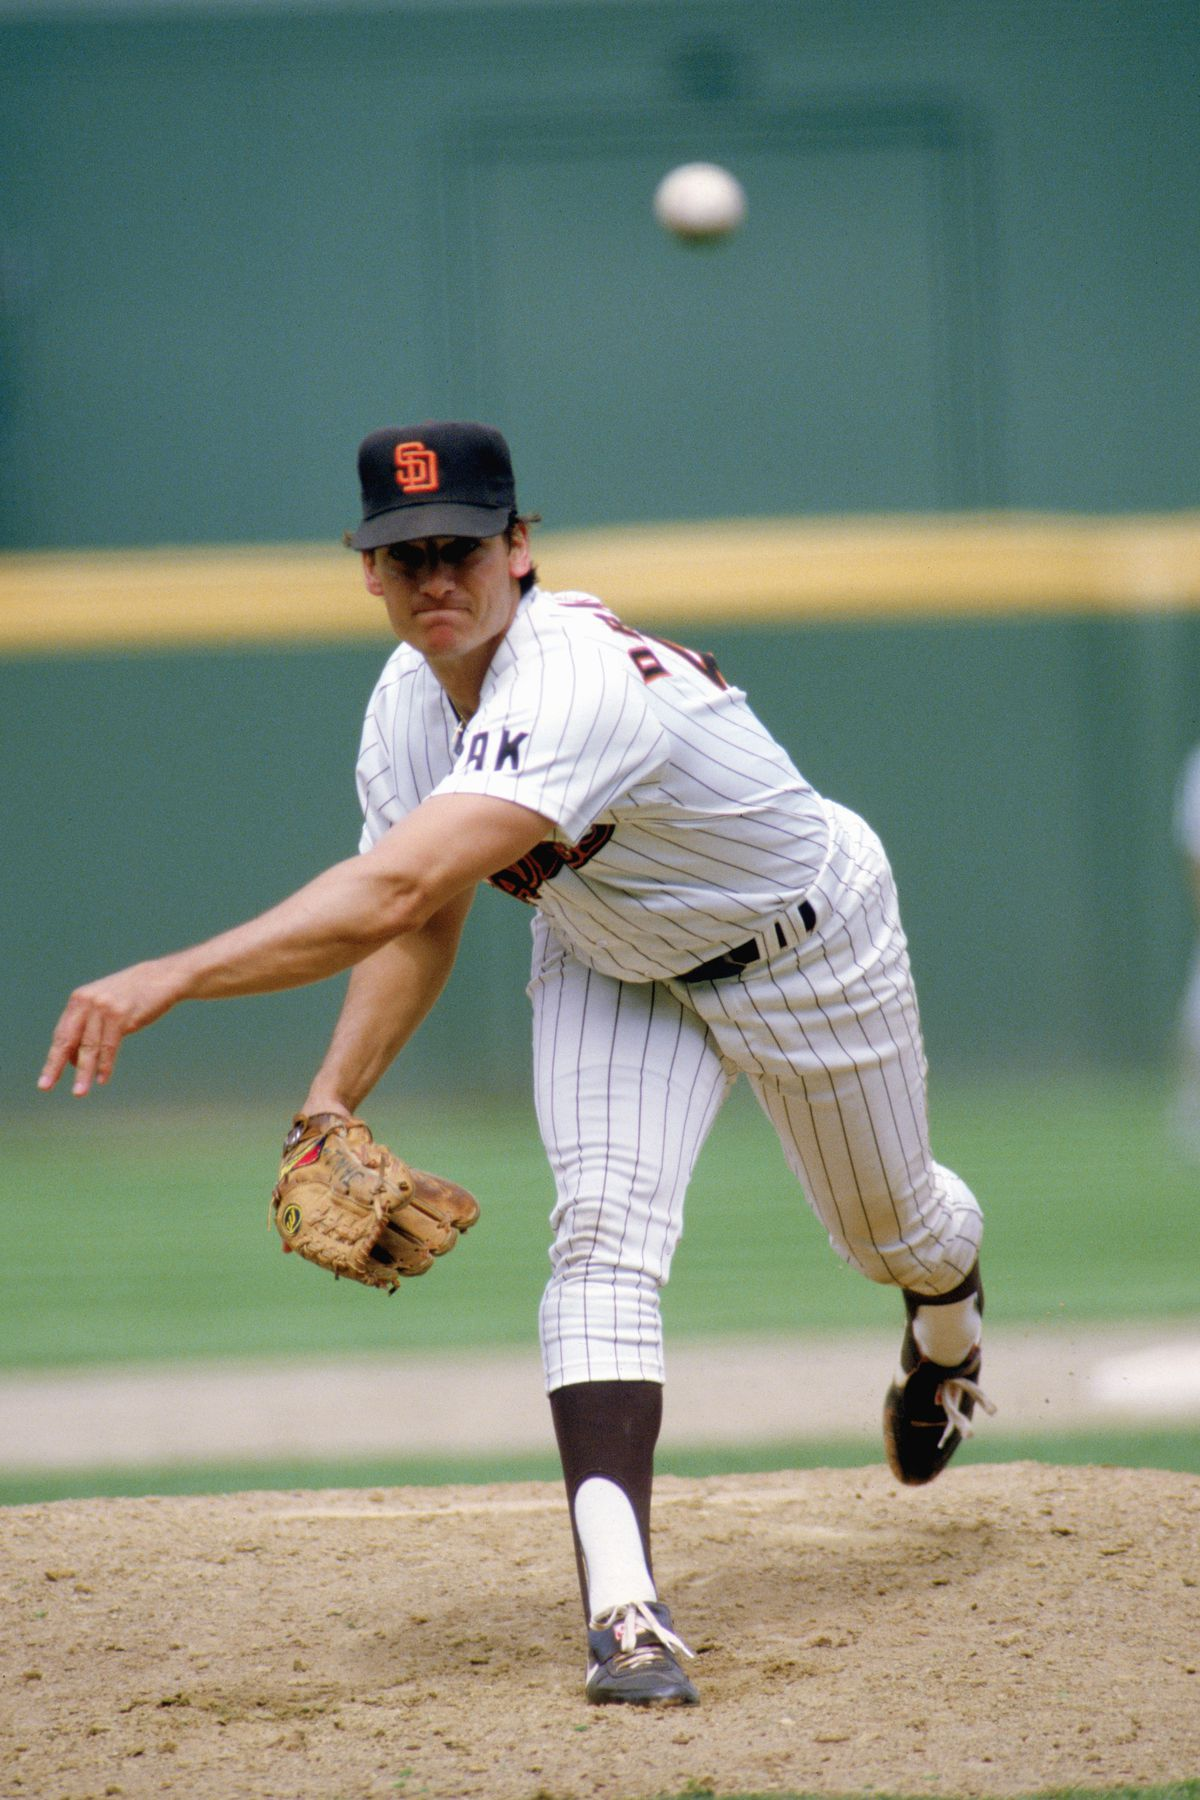 Dave Dravecky throws the pitch